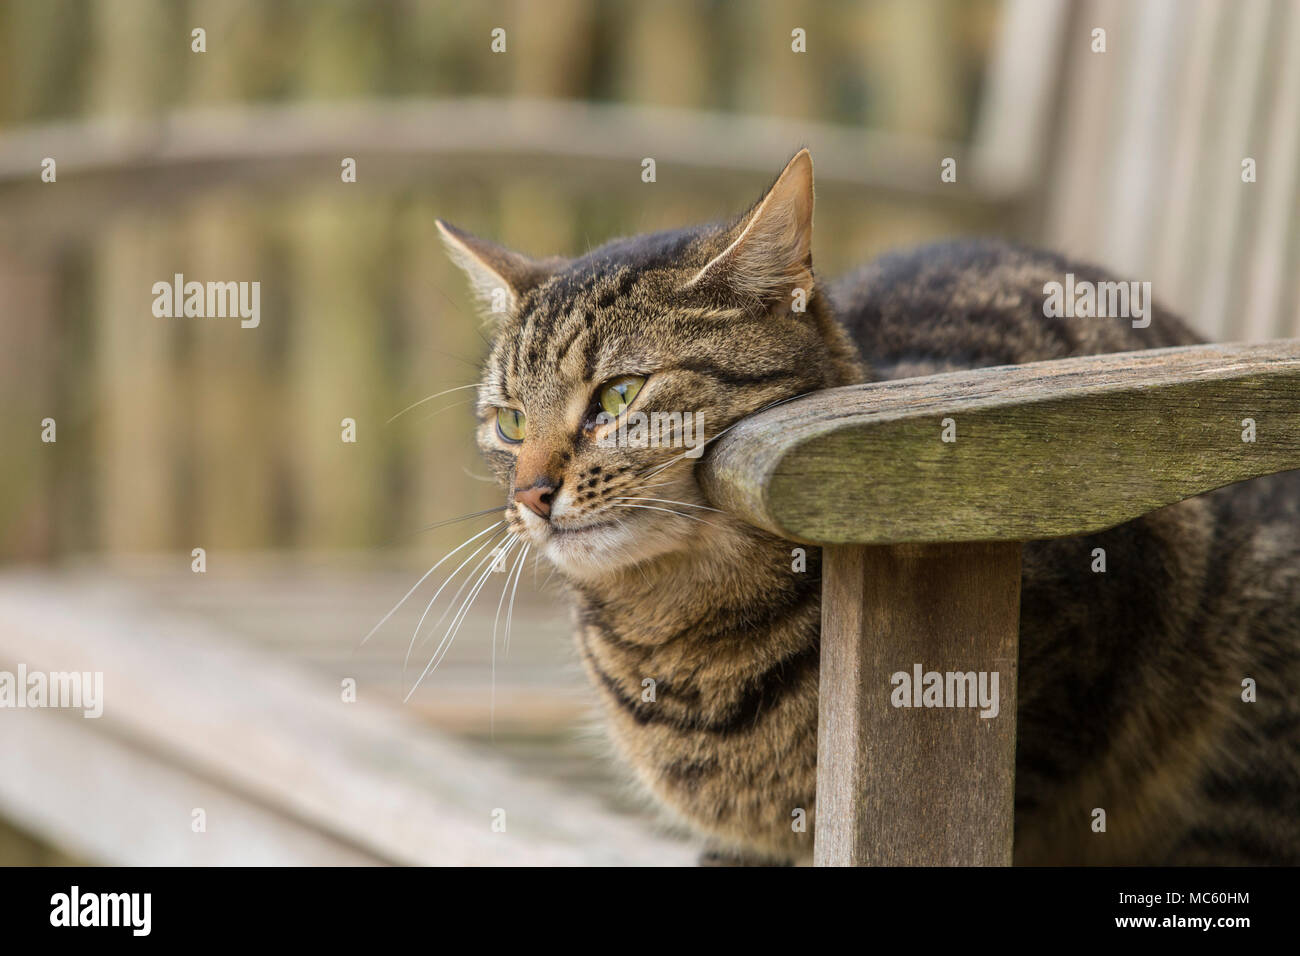 Young tabby cat, bengal cat rubbing it's cheeks onto a bench to leave it's hormonal scent. - Stock Image